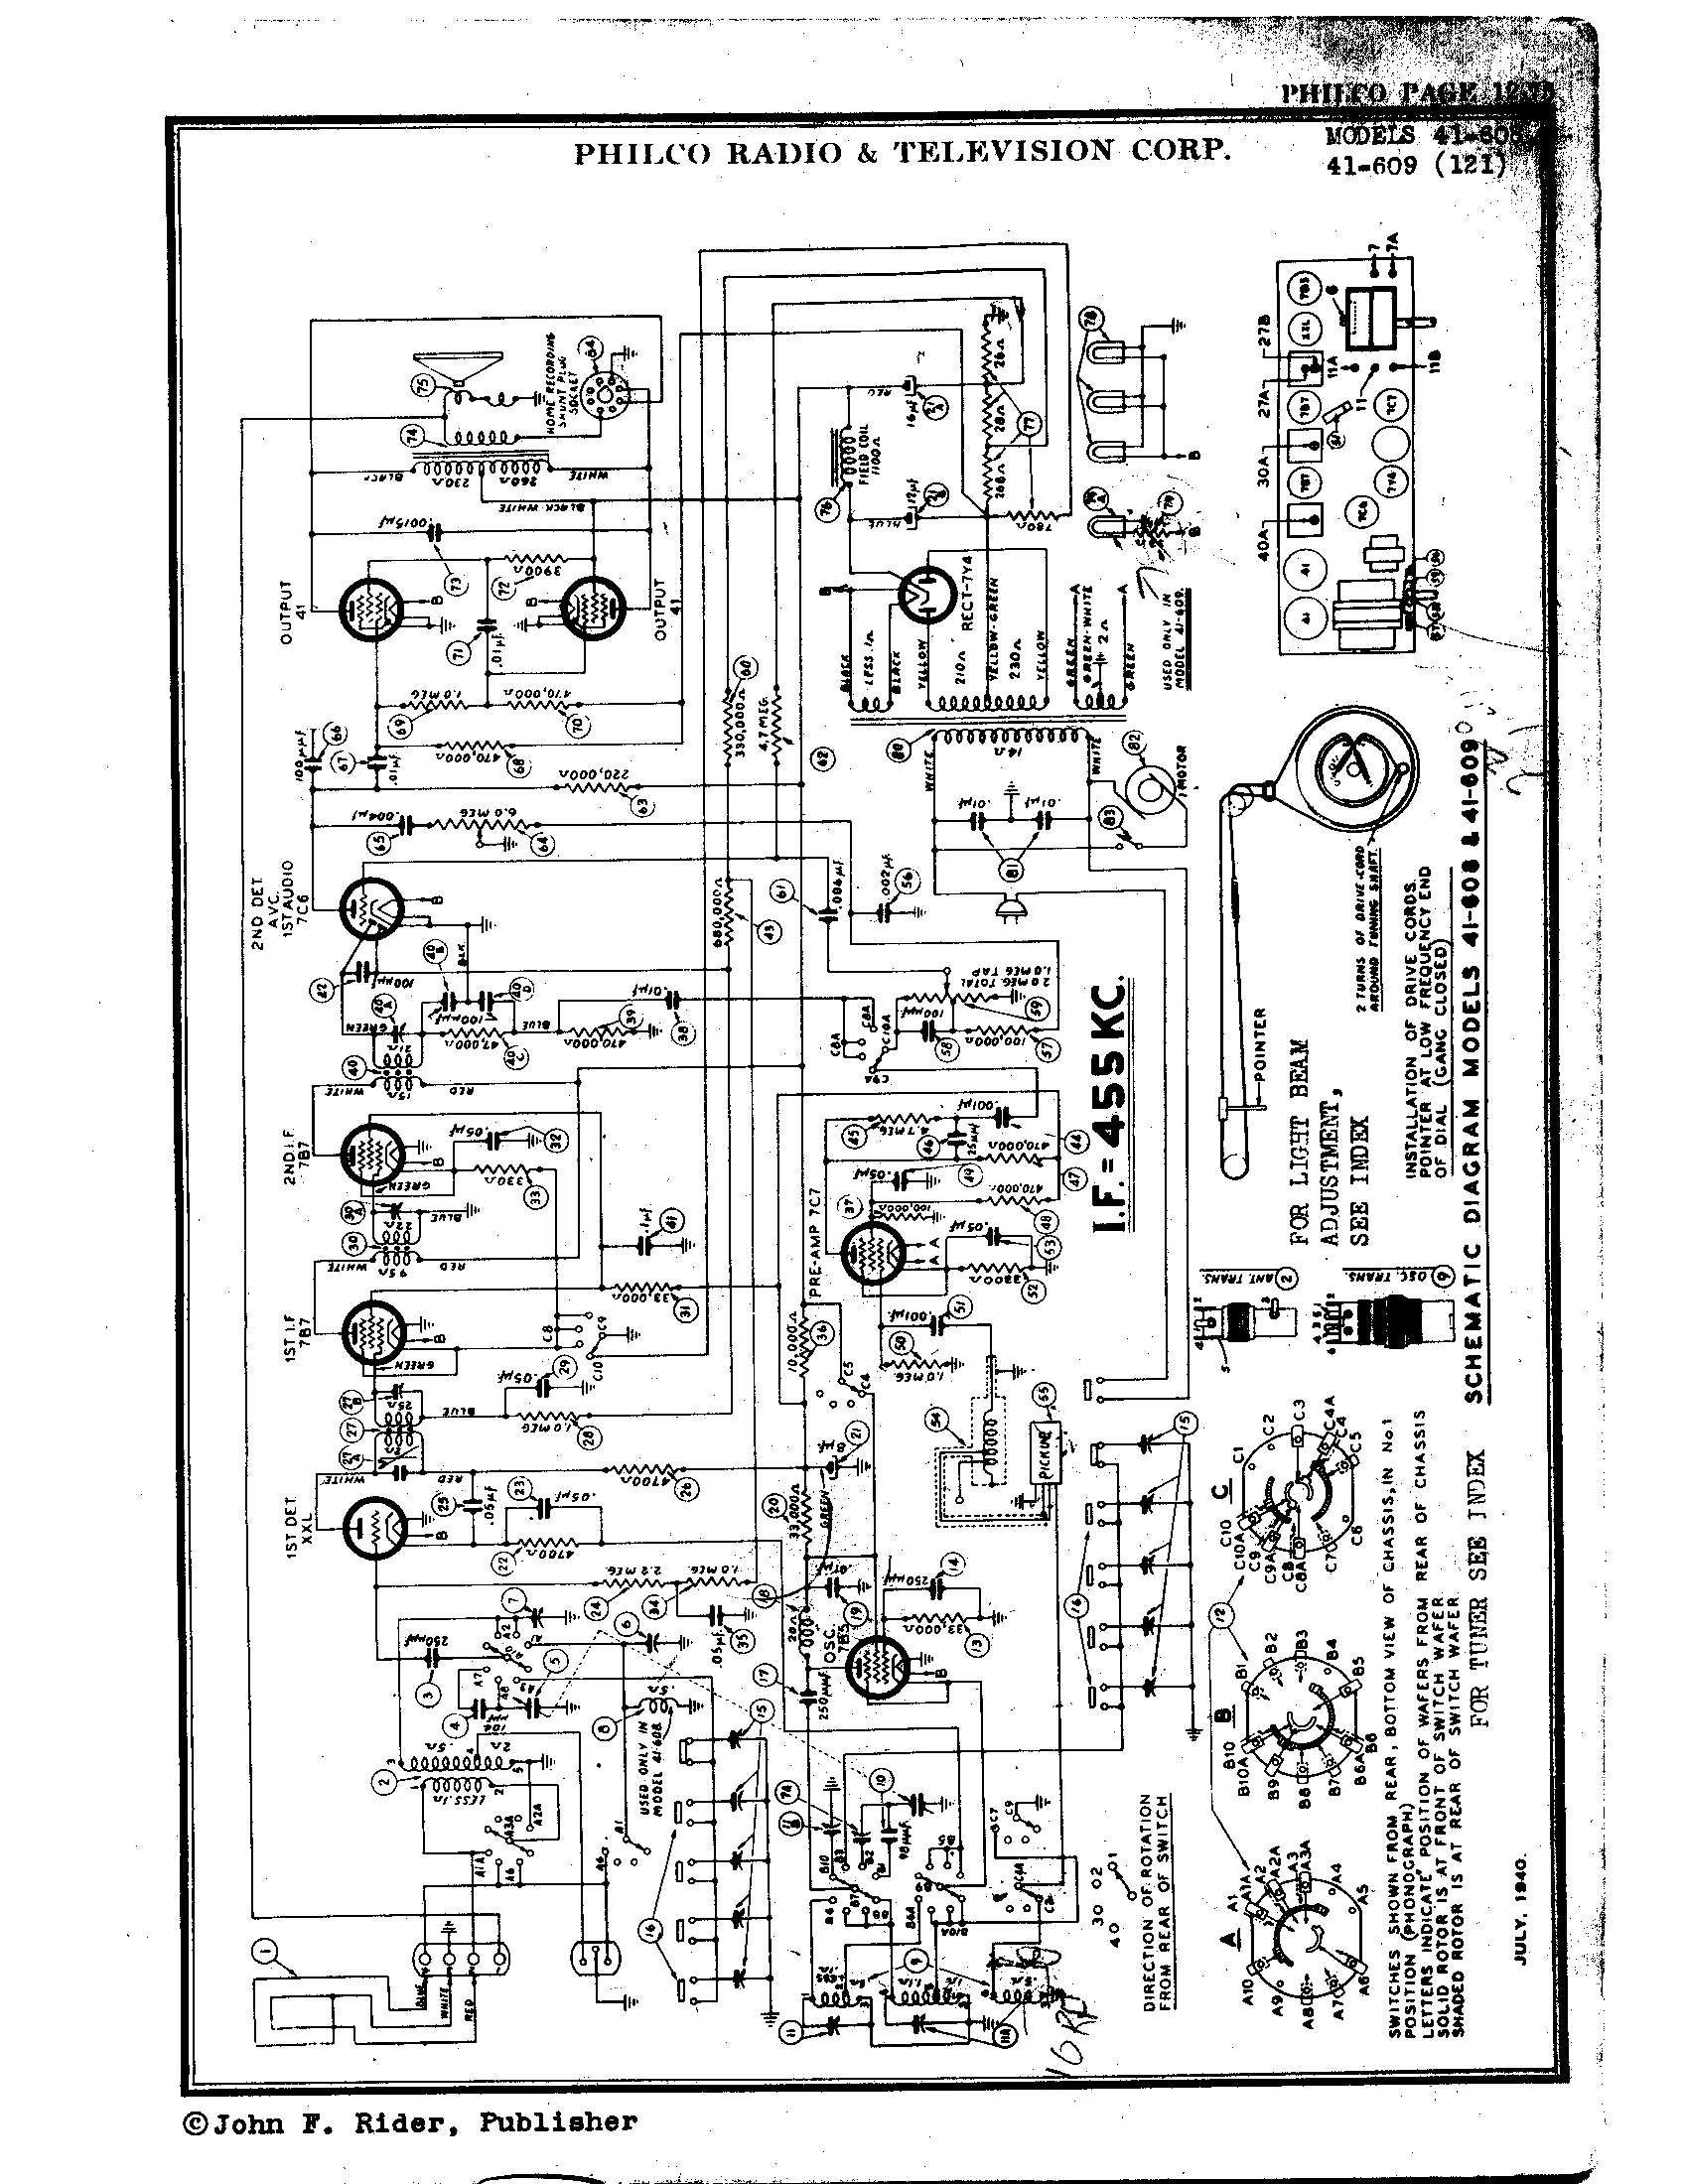 2010 Chevy Traverse Fuse Box Diagram as well Page 7 as well 2012 Chevy Sonic After Market Wiring Harness moreover 41 608 121 furthermore Boss Audio System Cap20 In Two  lifier Wiring Diagram. on wiring diagrams for speakers